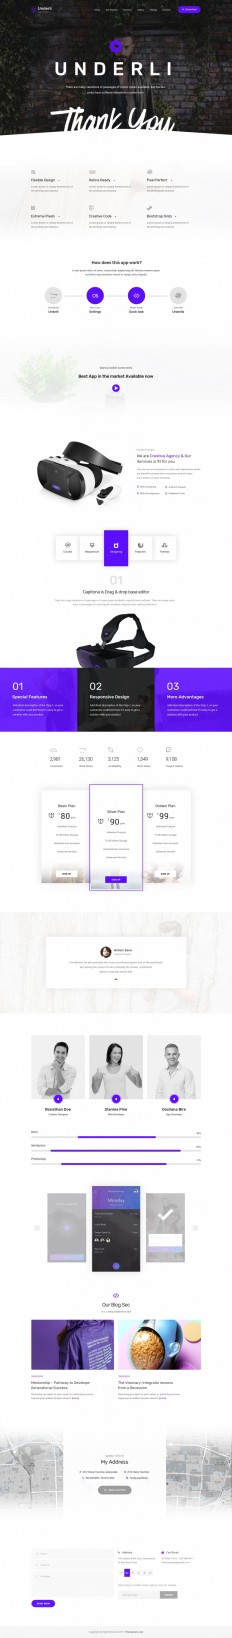 App Landing Page & Product Showcase on Inspirationde